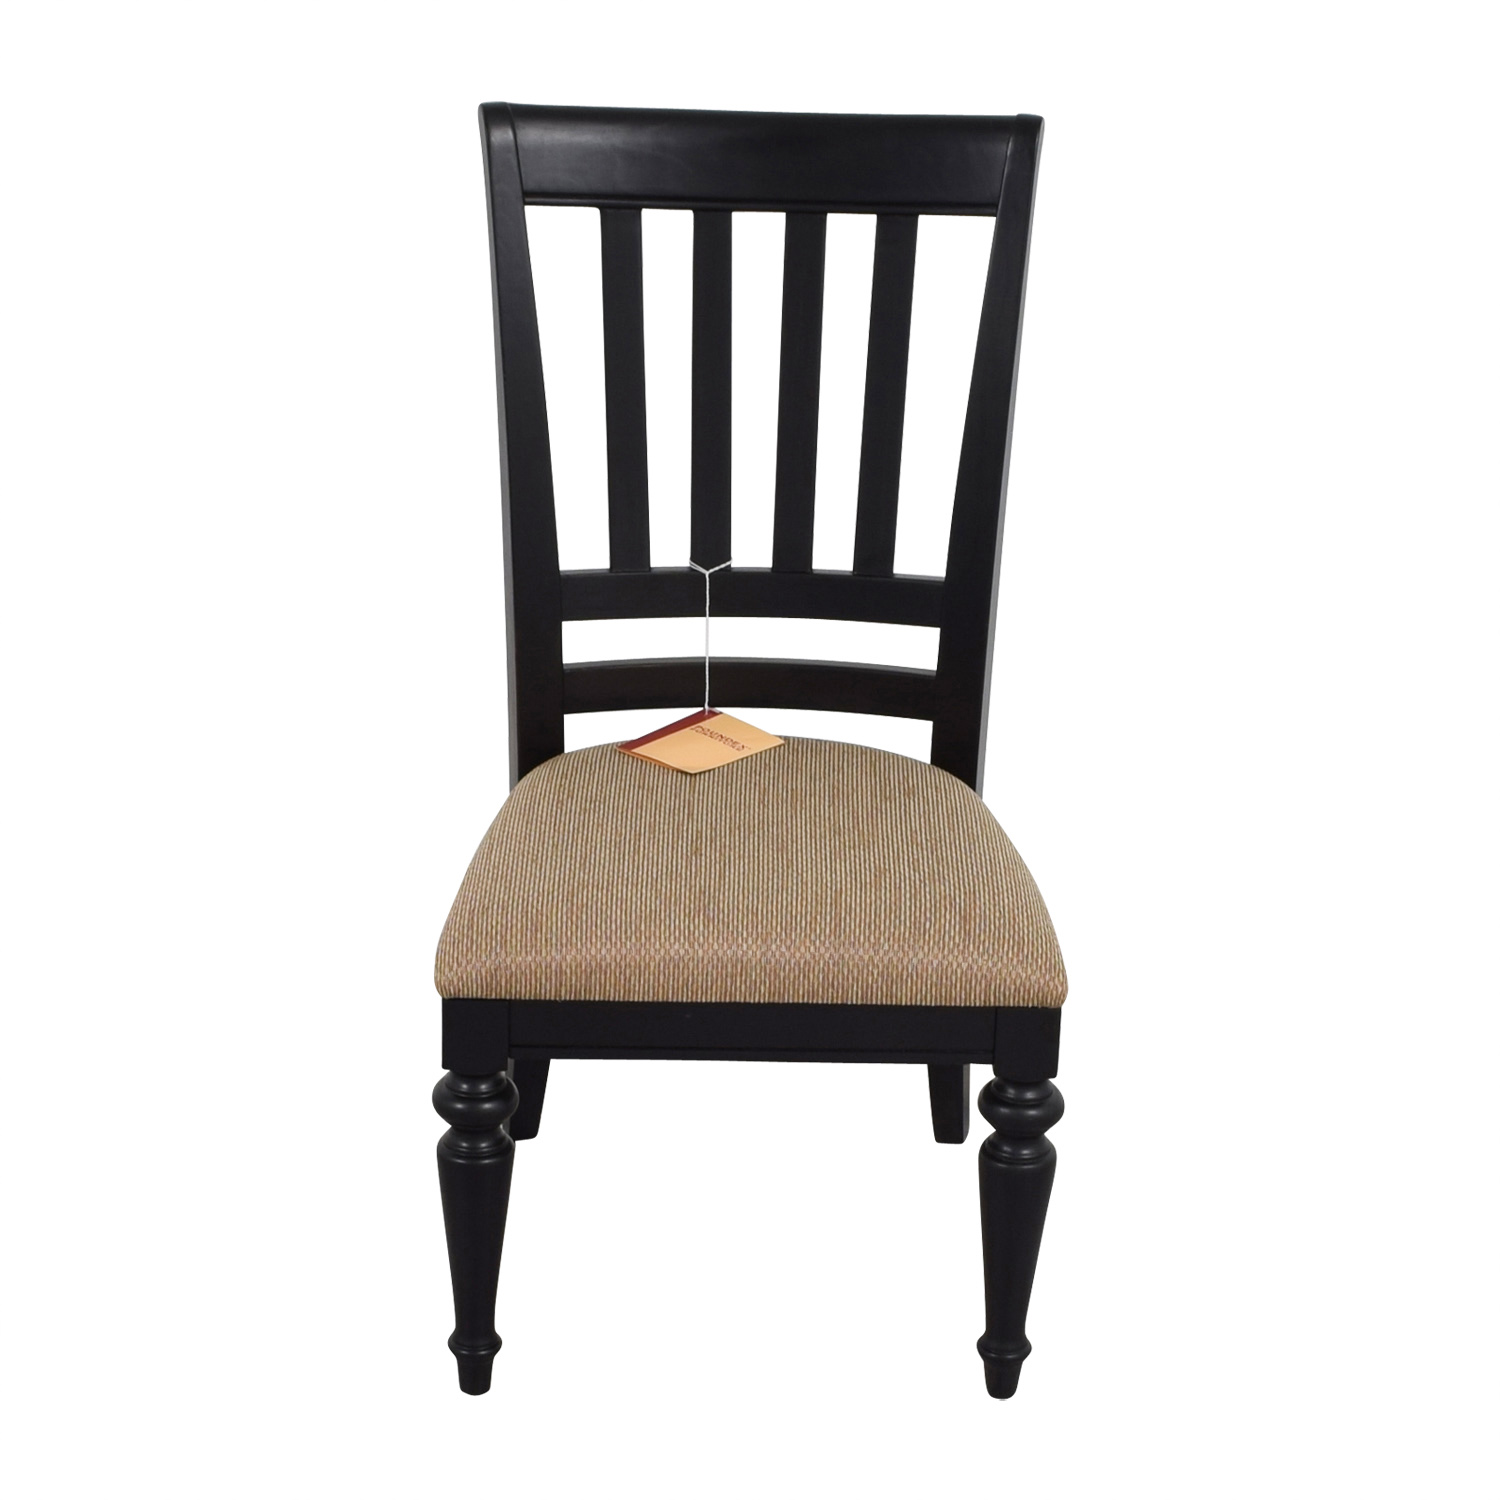 Poundex Furniture Black Chair with Padded Seat / Chairs